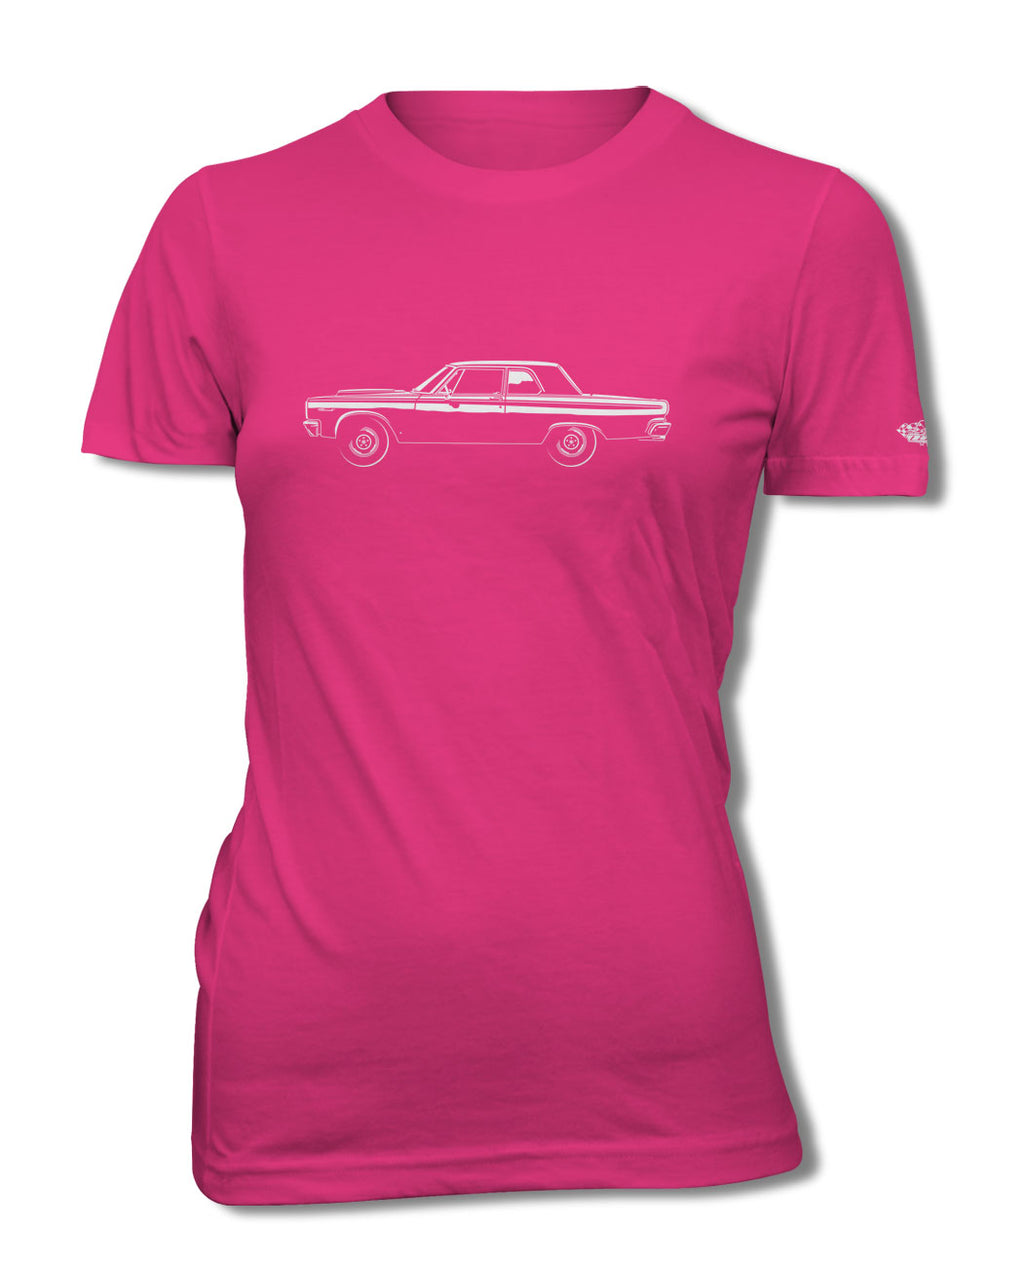 1965 Dodge Coronet Code A990 T-Shirt - Women - Side View